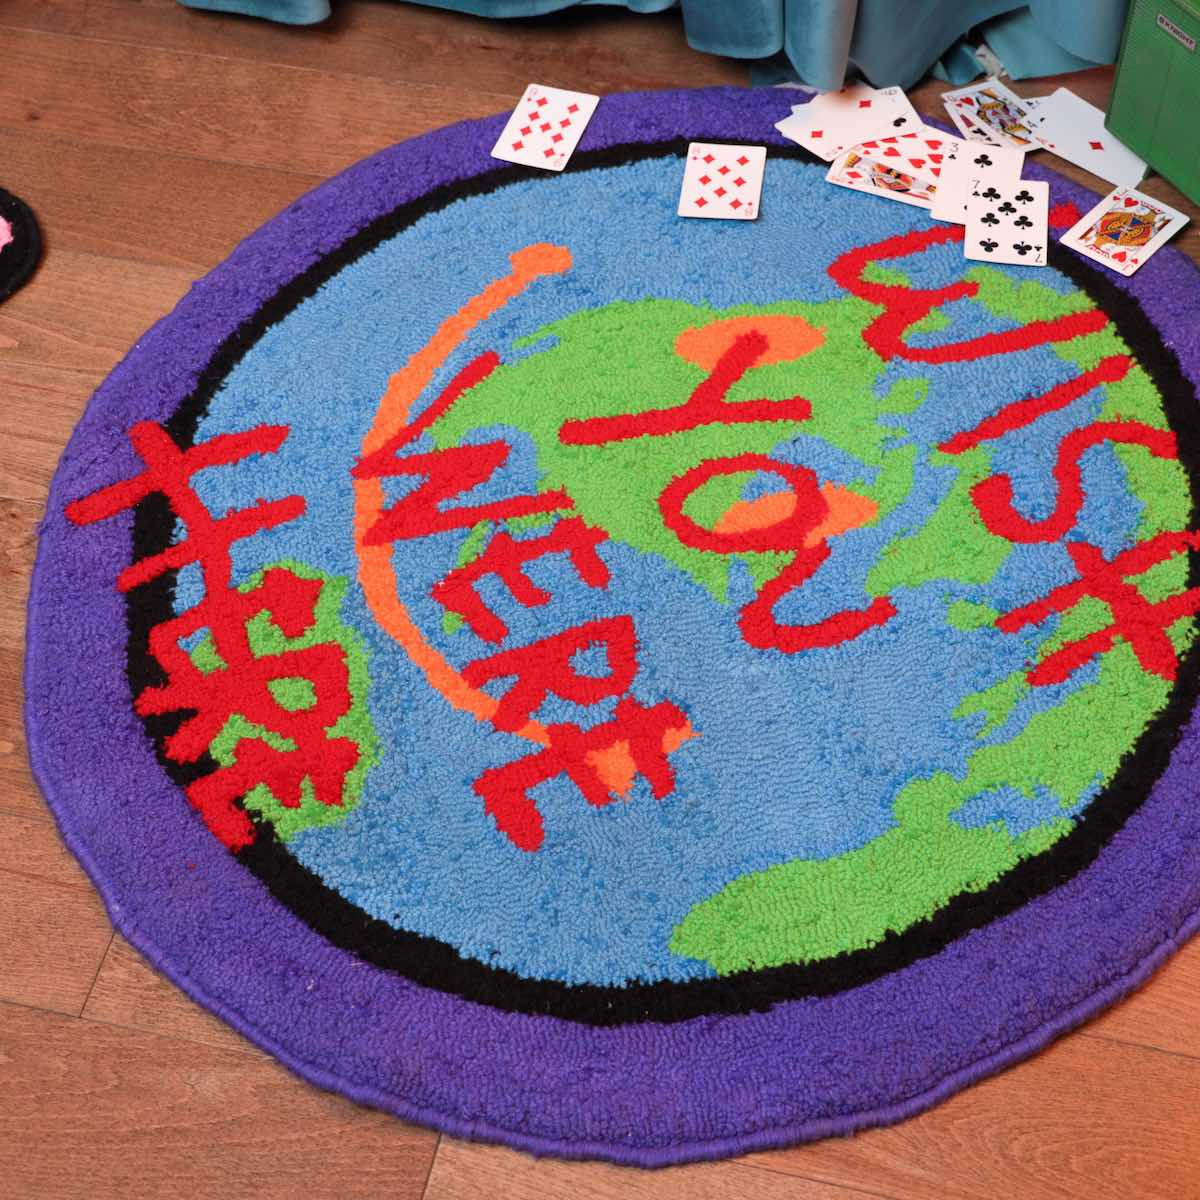 """A rug that says """"Wish You Were Here"""""""